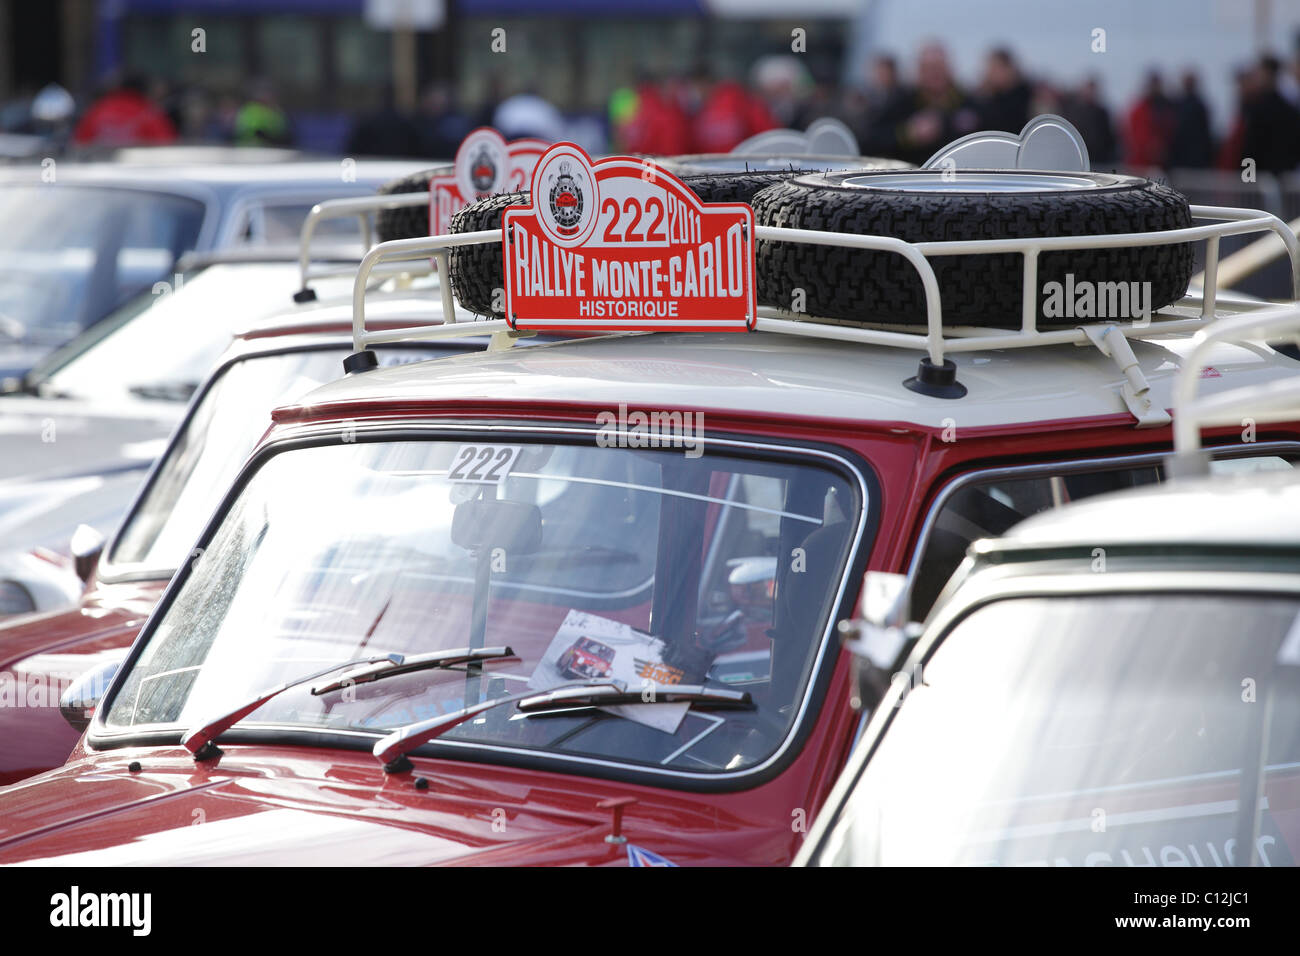 Cars parked in Glasgow prior to the start of the 2011 Monte Carlo Rallye, Scotland, UK - Stock Image